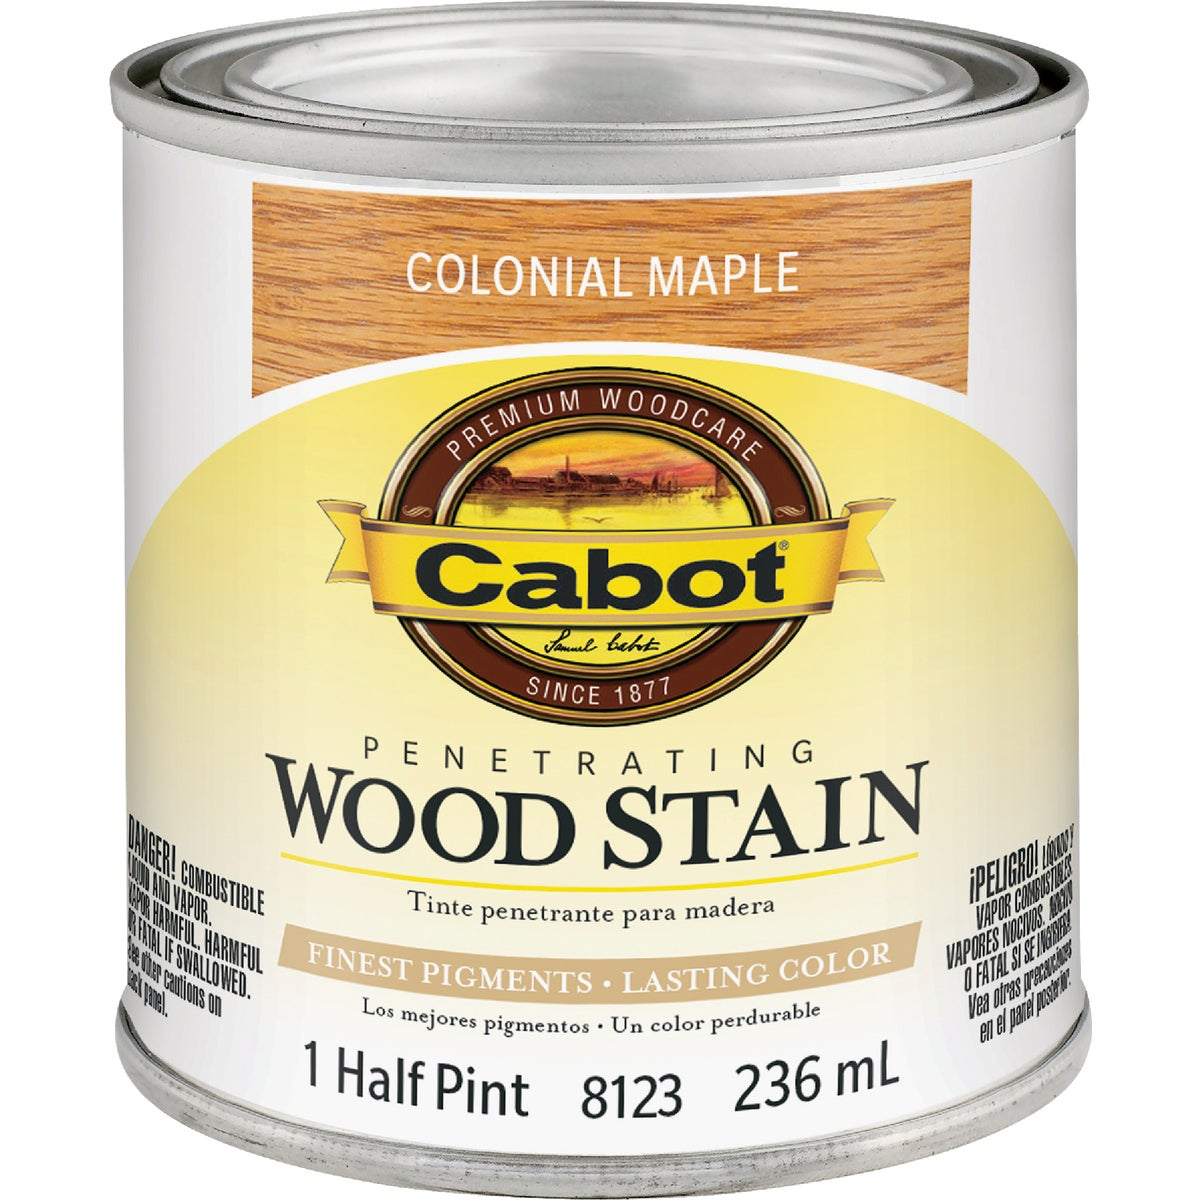 INT COL MAPLE WOOD STAIN